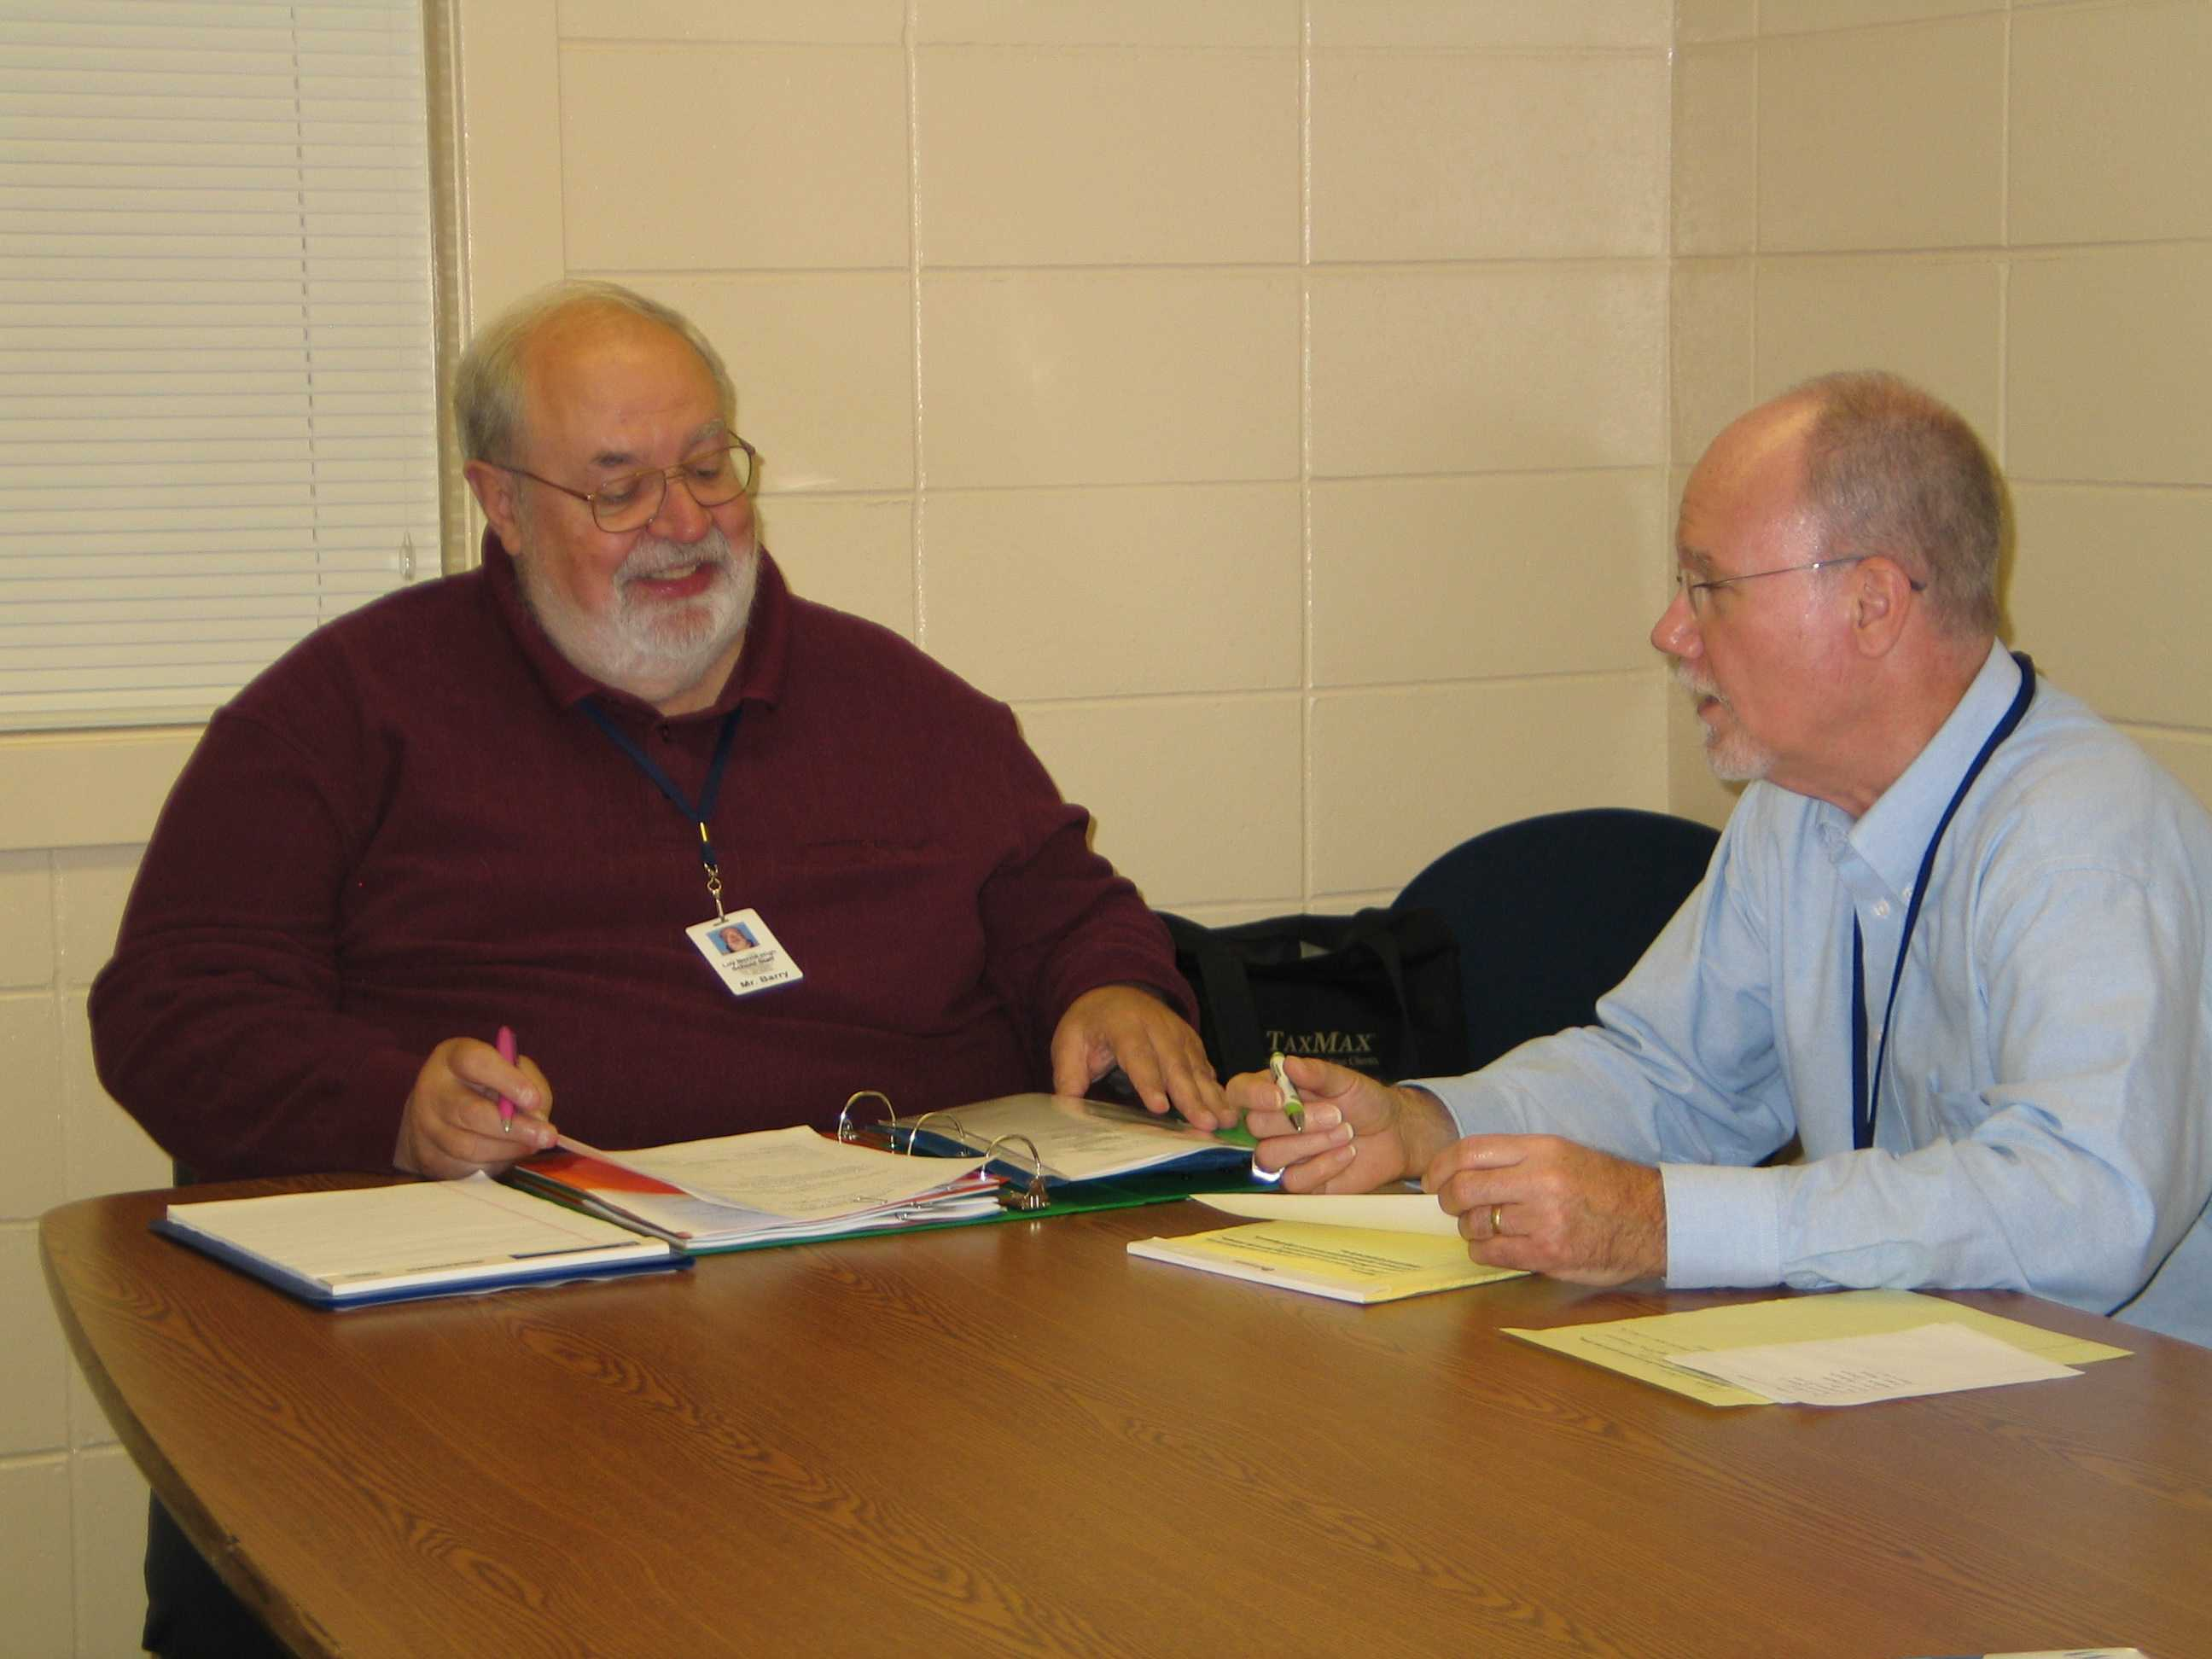 Photo Credit / Breonna Burnside  Mr. Burnside (right) and Mr. Barry (left) discuss previous mediations.